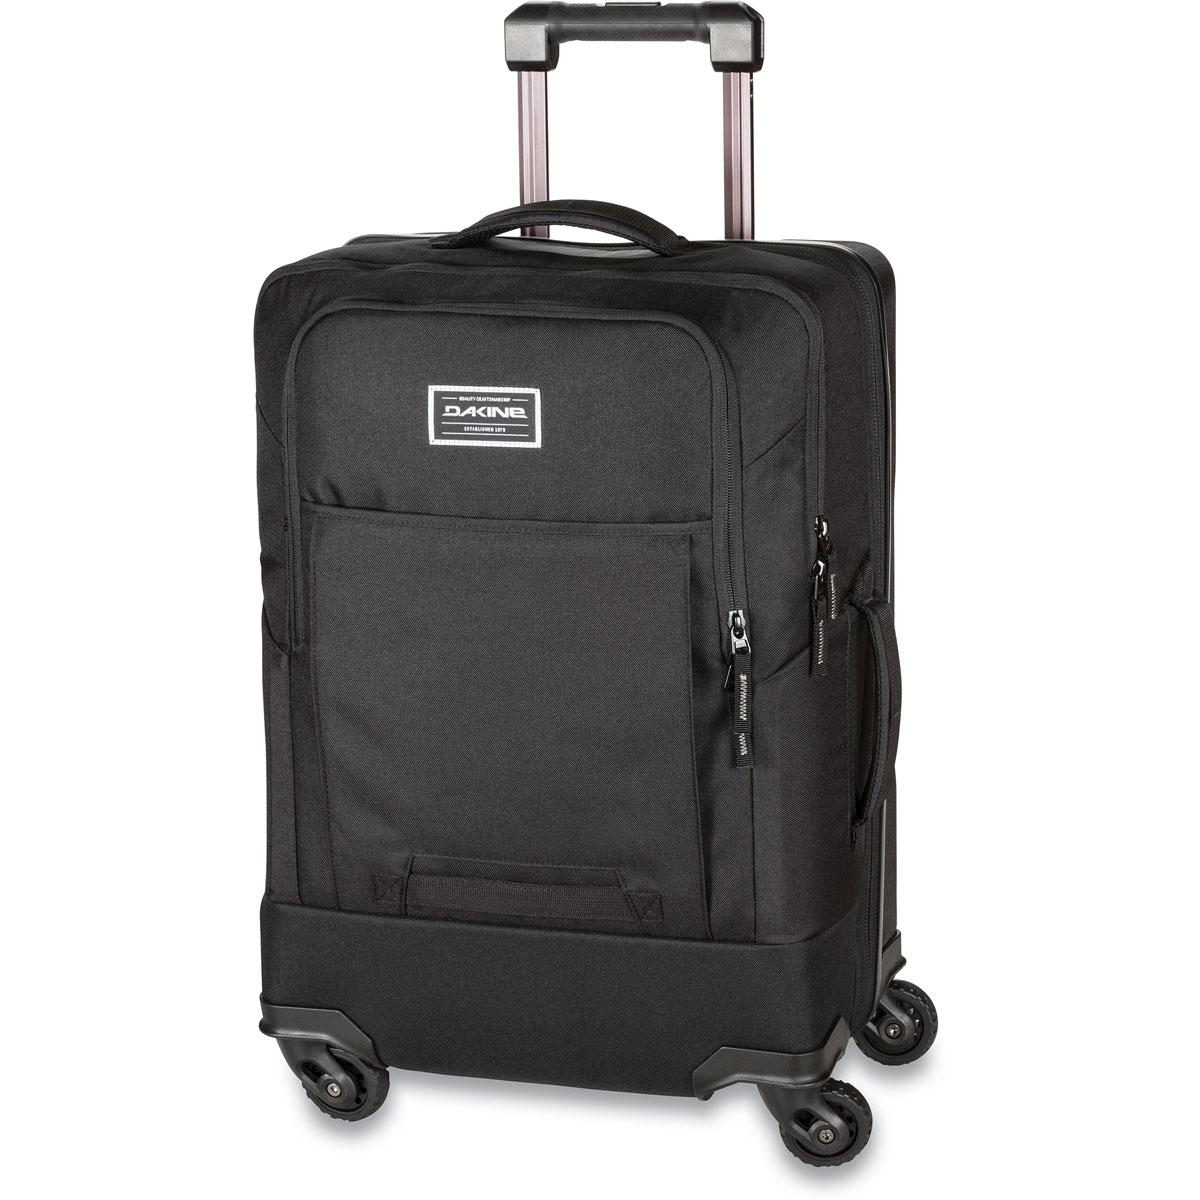 Dakine Terminal 40L bag in Black